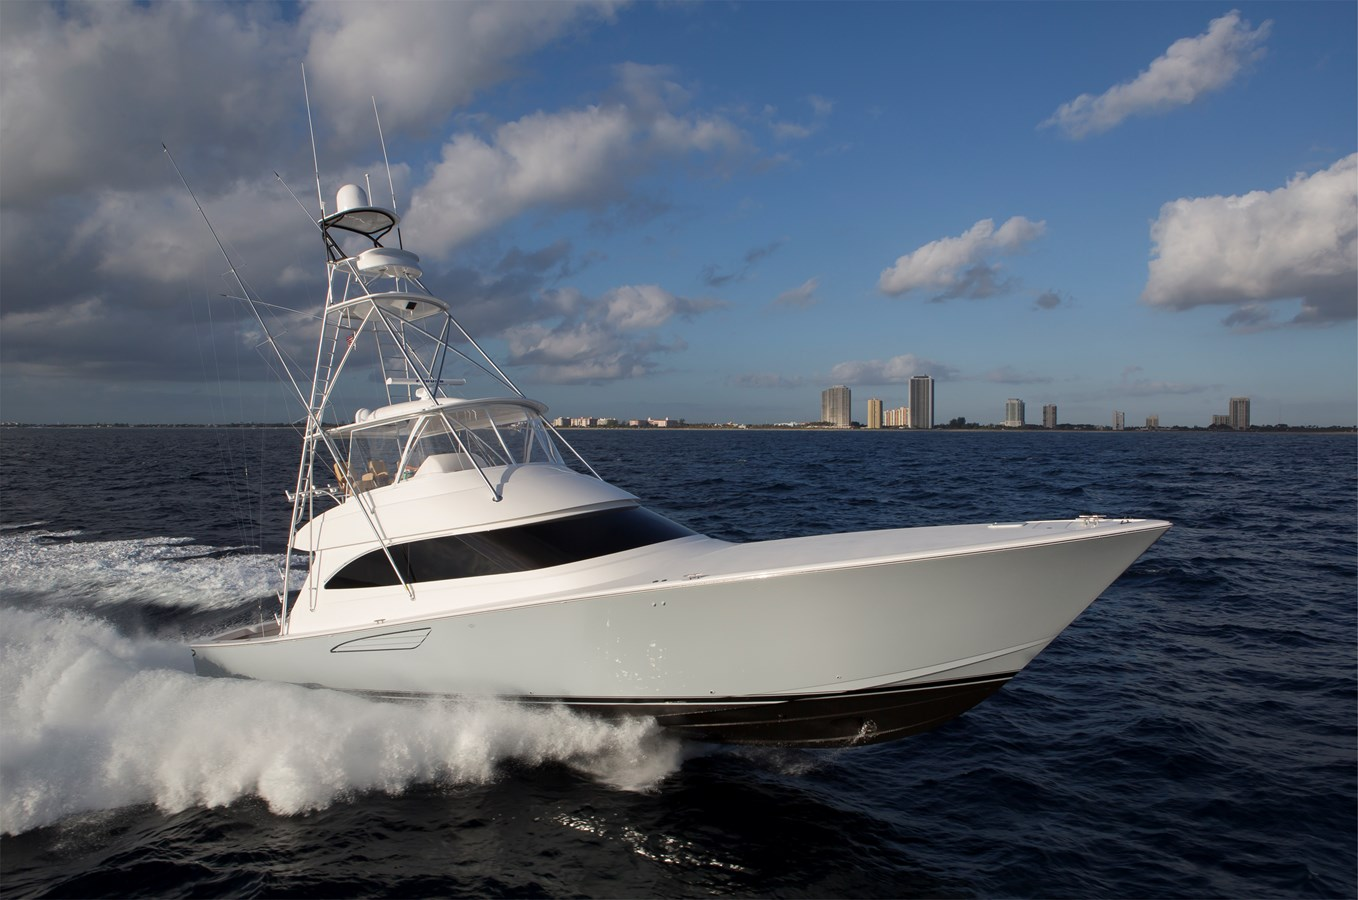 2019 VIKING 62 Convertible (VK62-058) For Sale